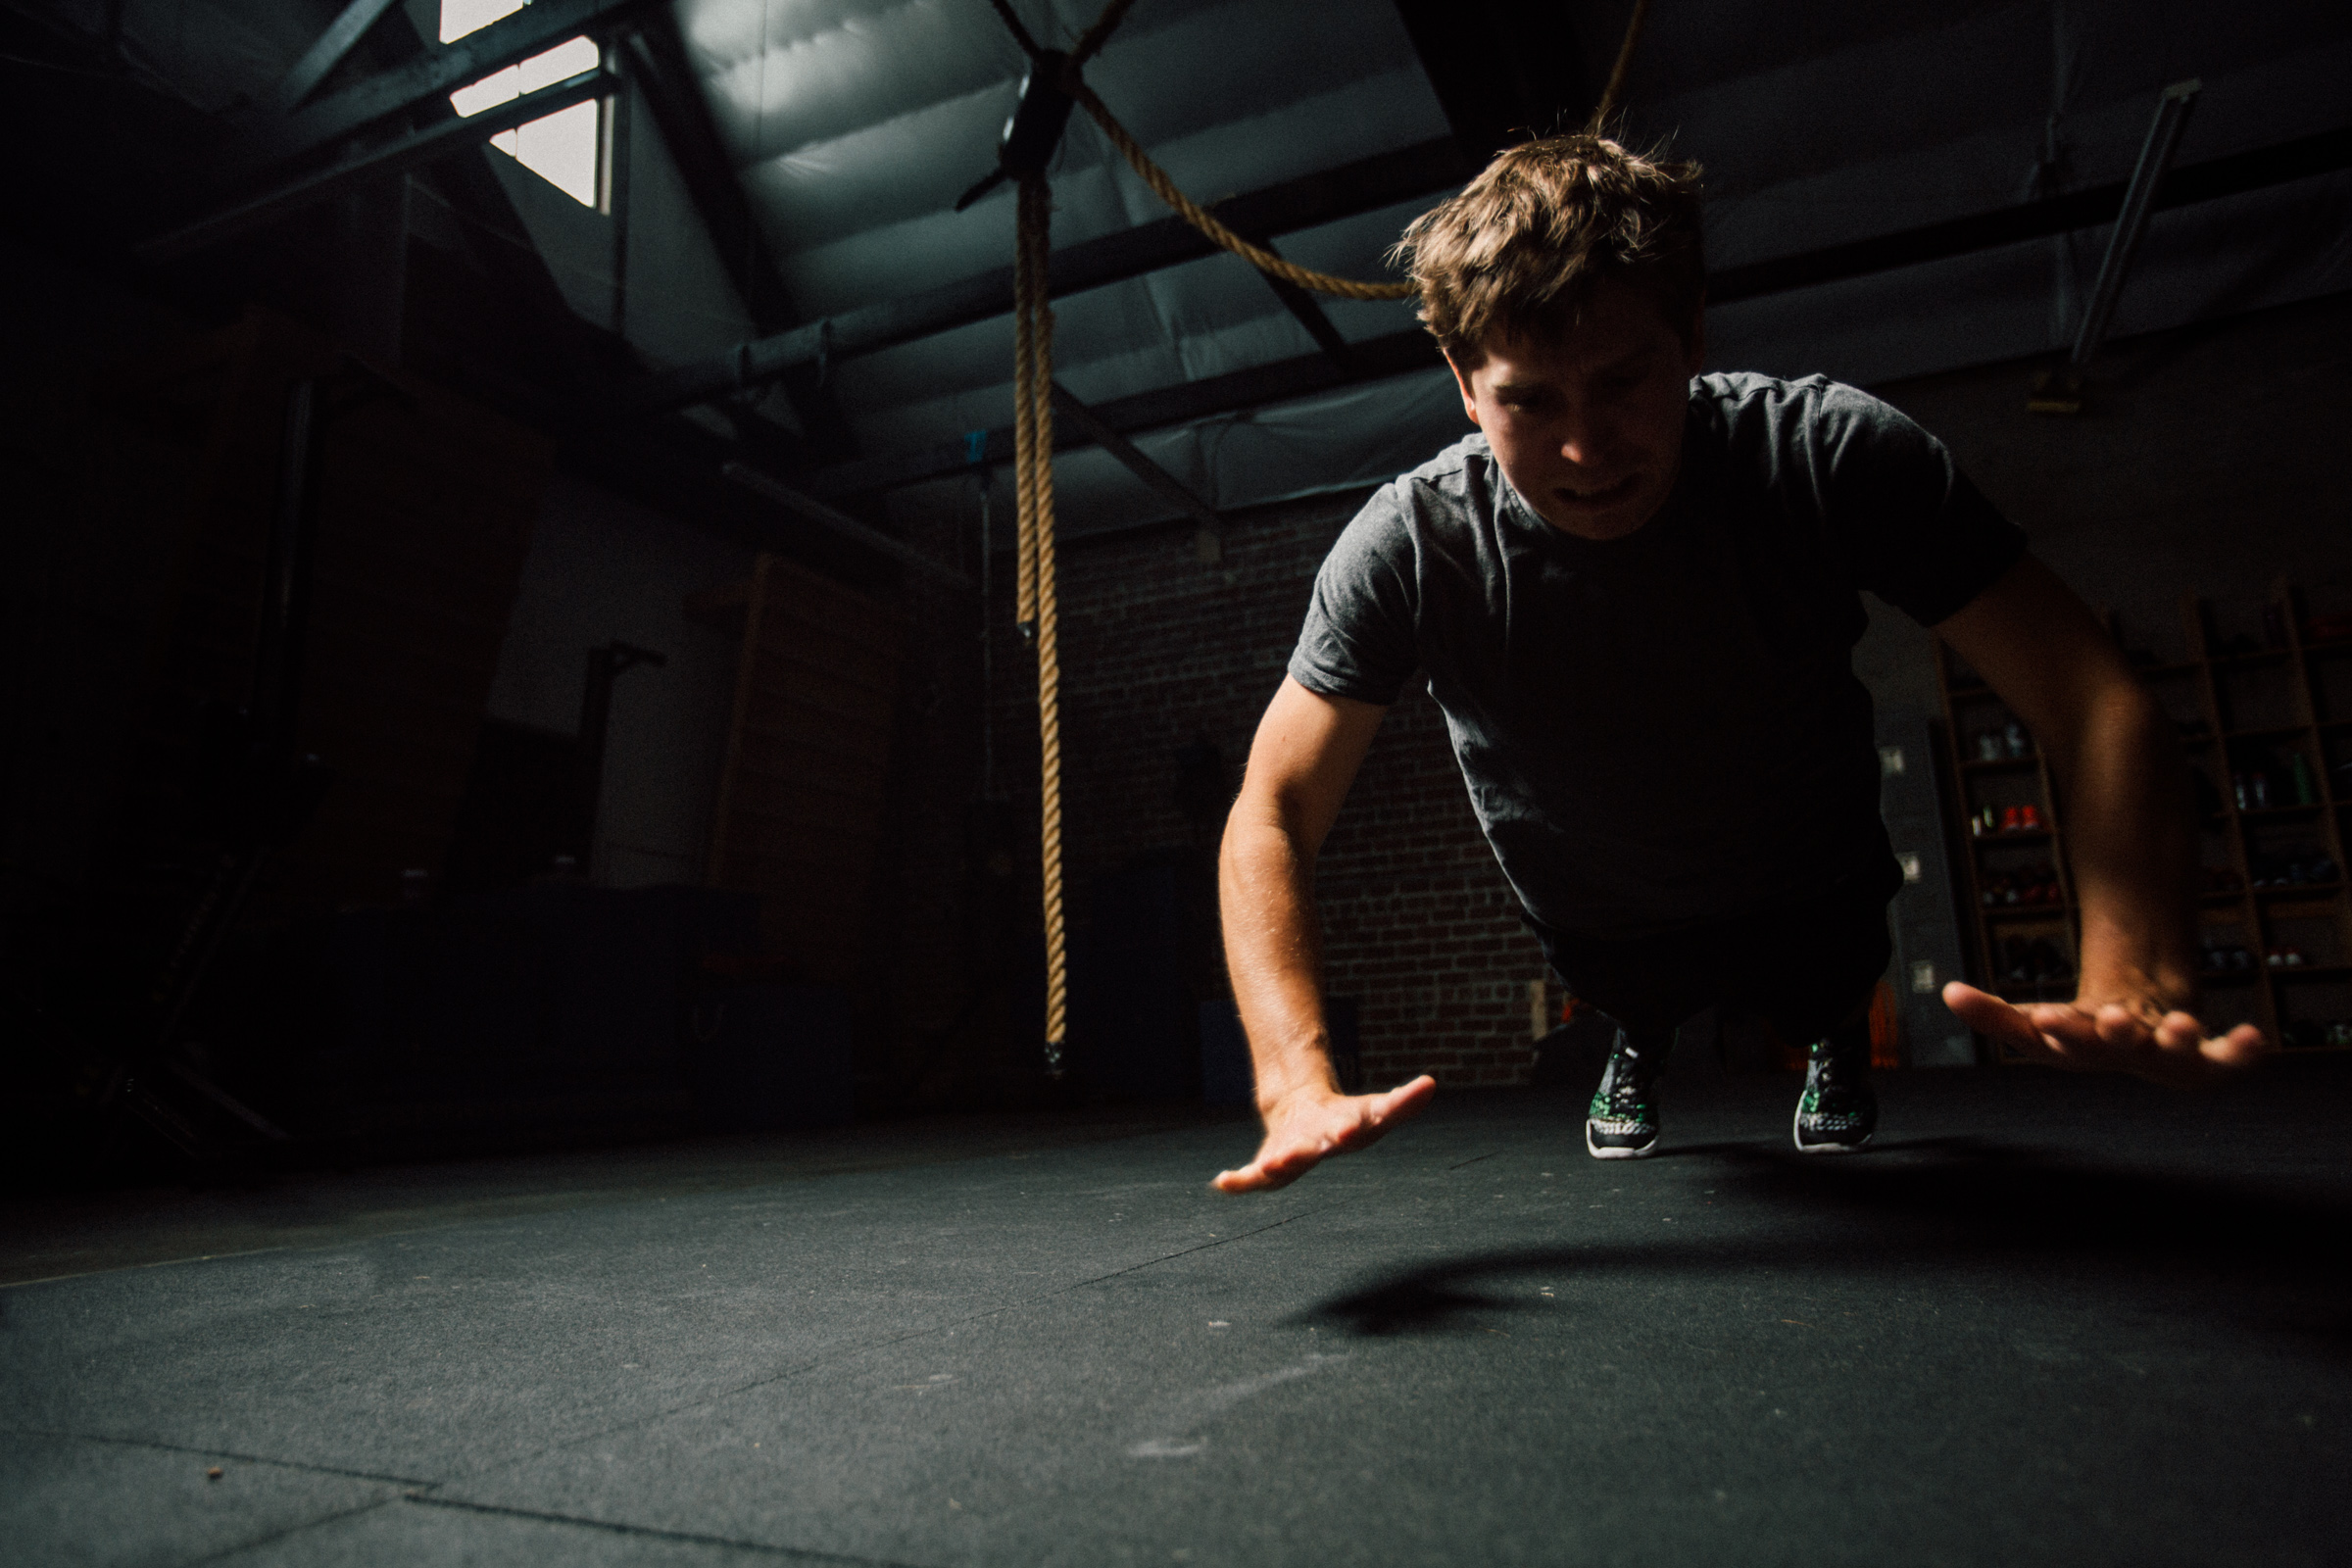 Dramatic lighting hide distracting elements in the gym allowing viewers eyes to move toward the subject.